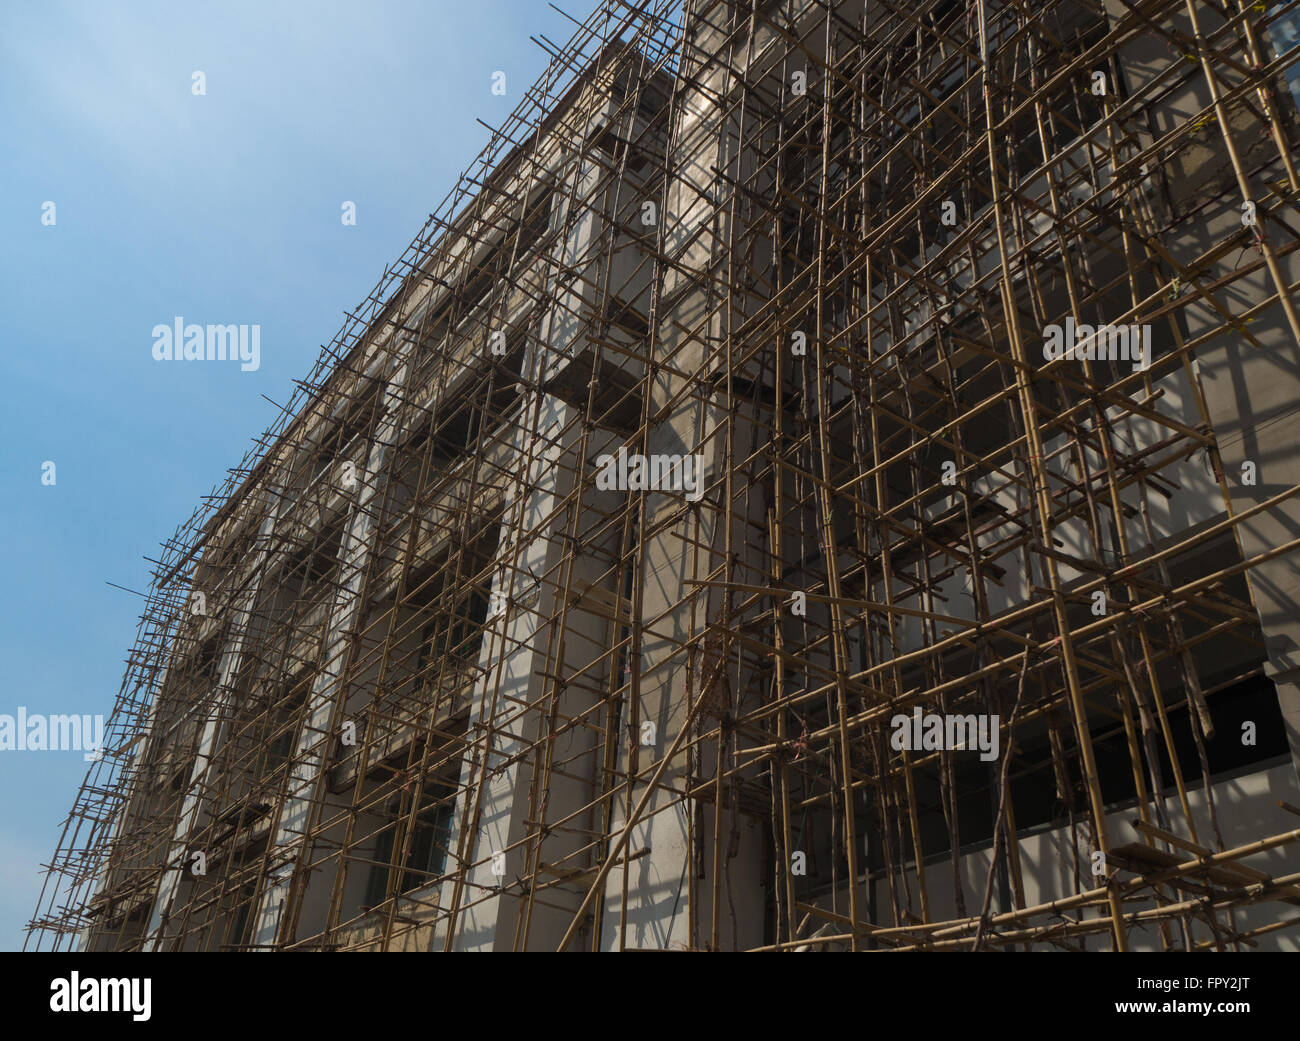 Construction building with bamboo scaffolding, Thailand - Stock Image